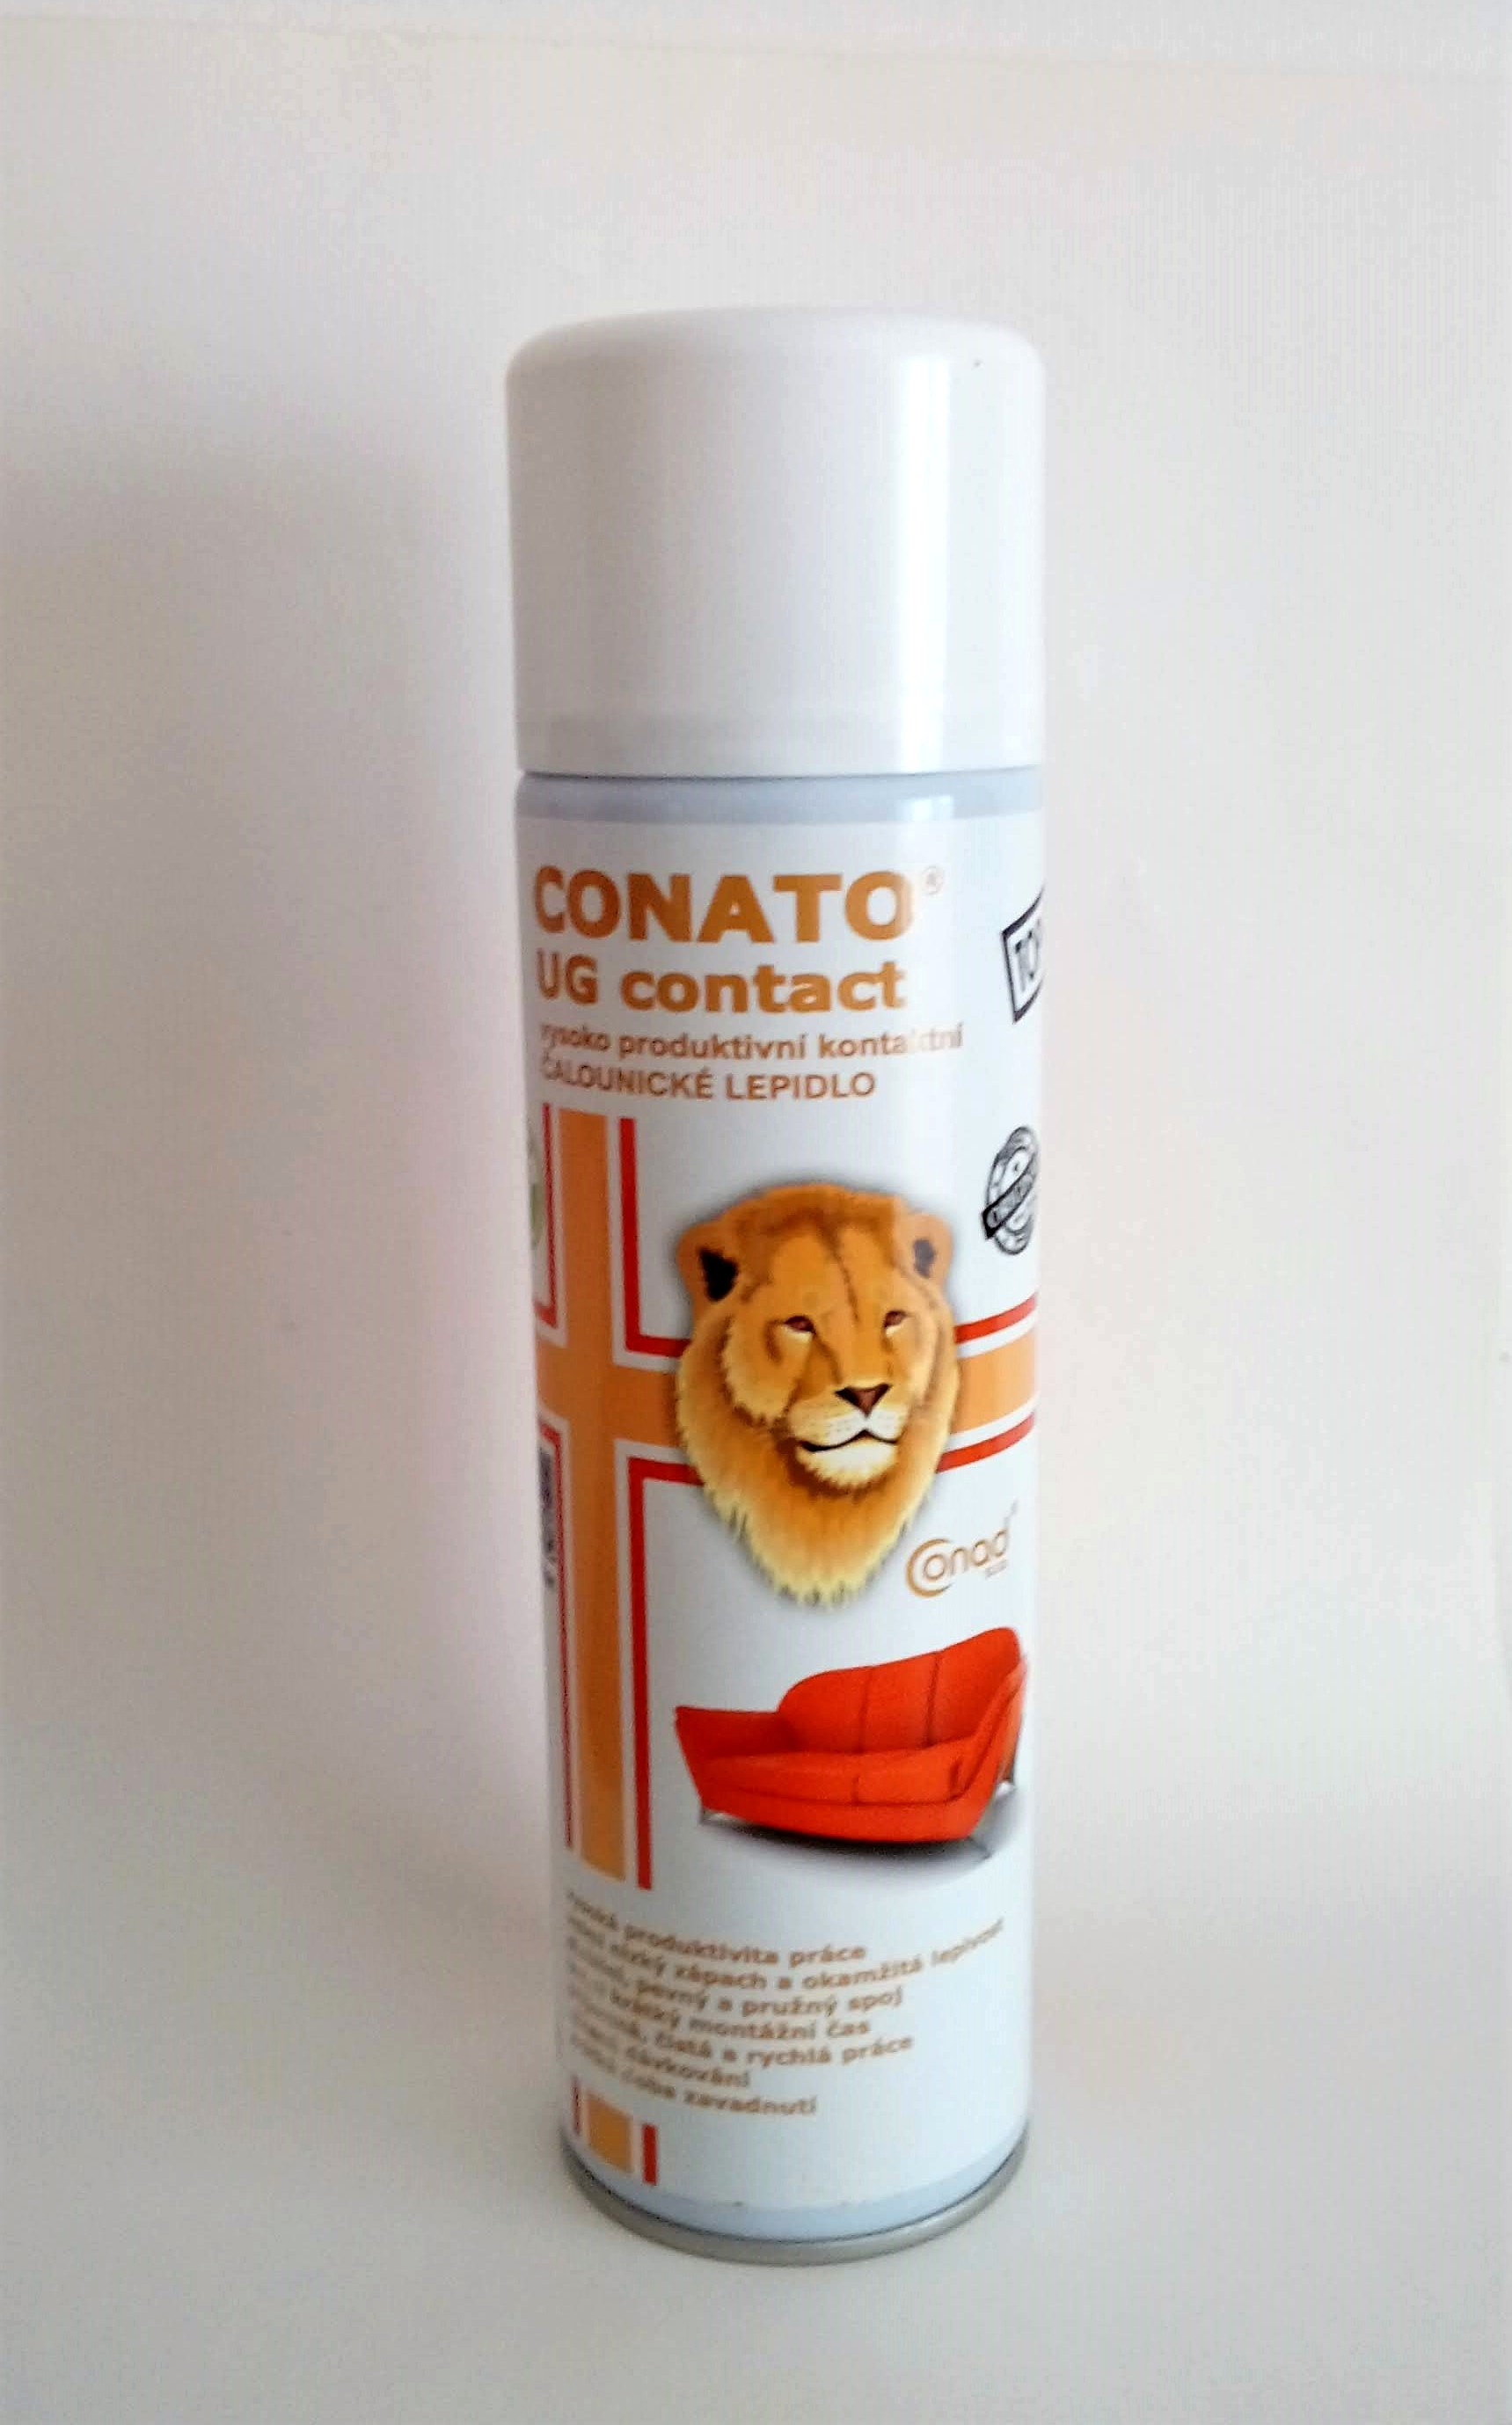 Lep Conato UG contact 500 ml